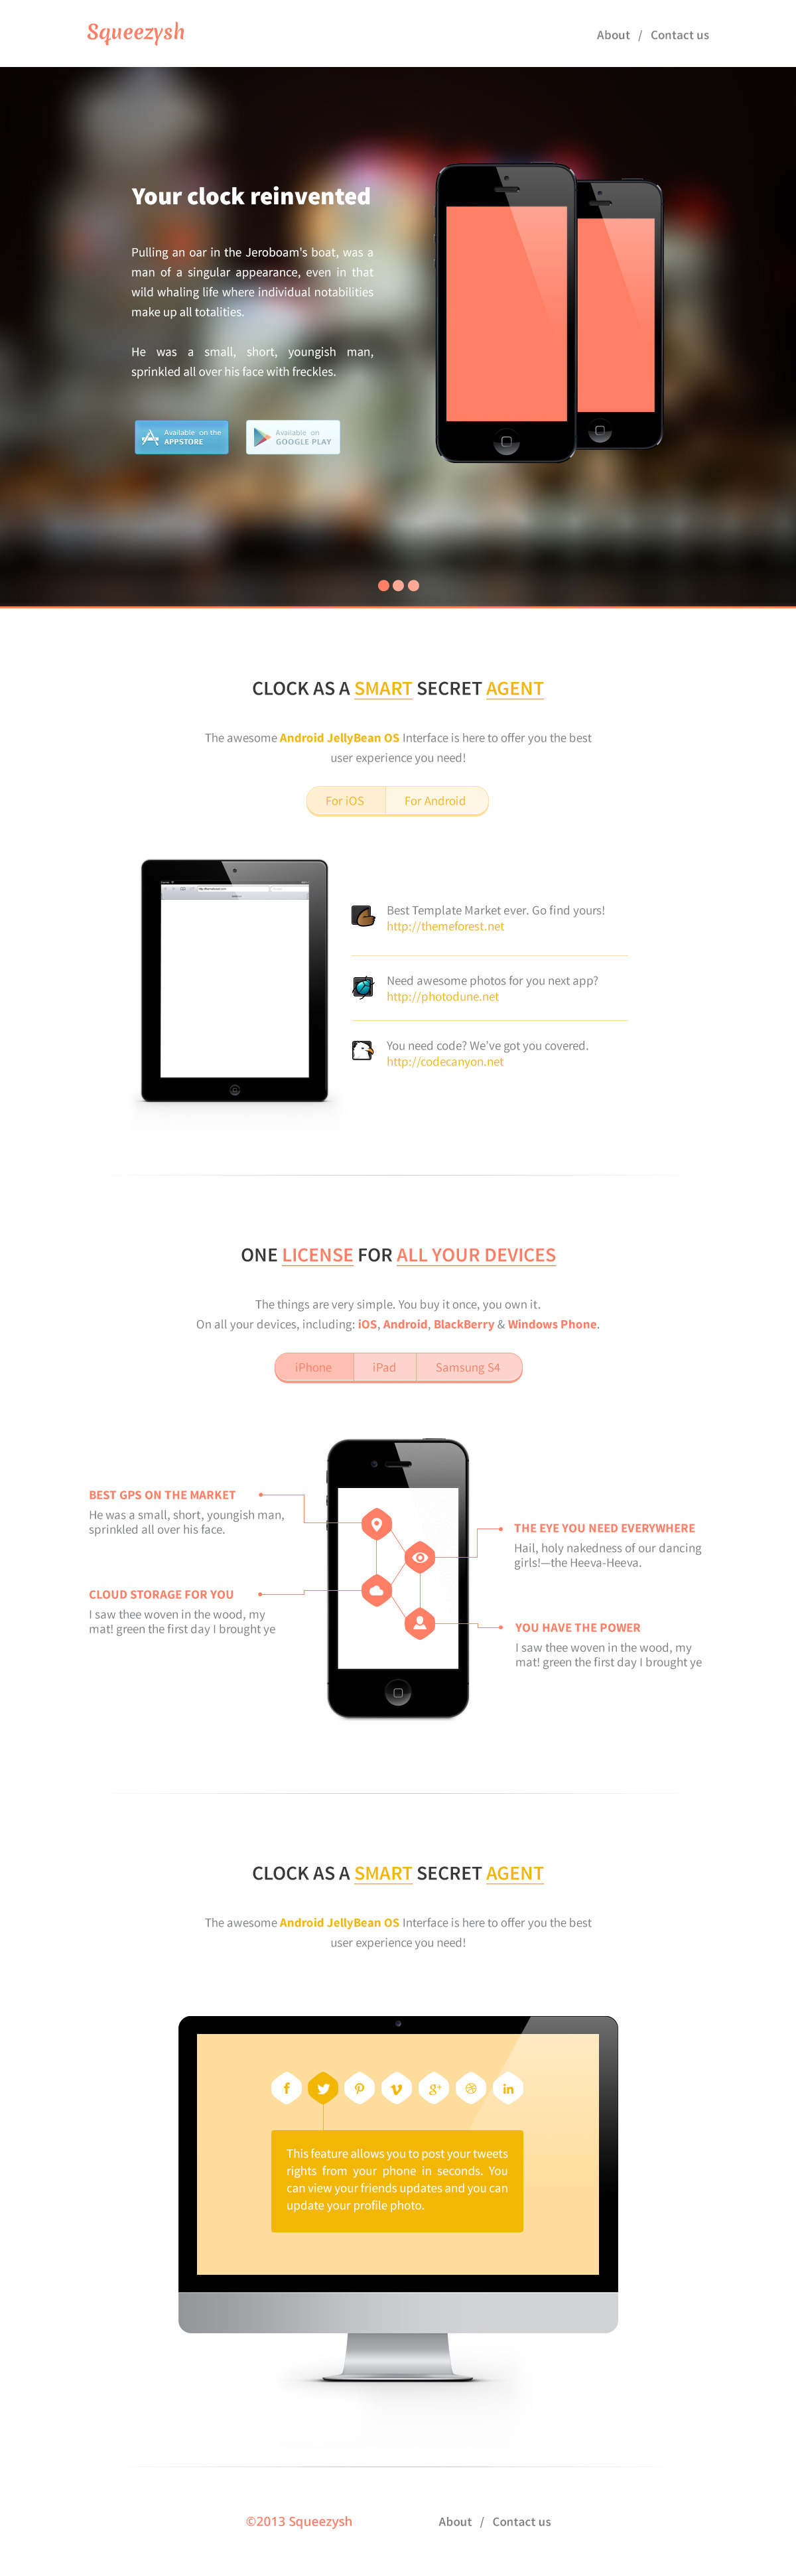 Squeezysh - PSD Landing Page